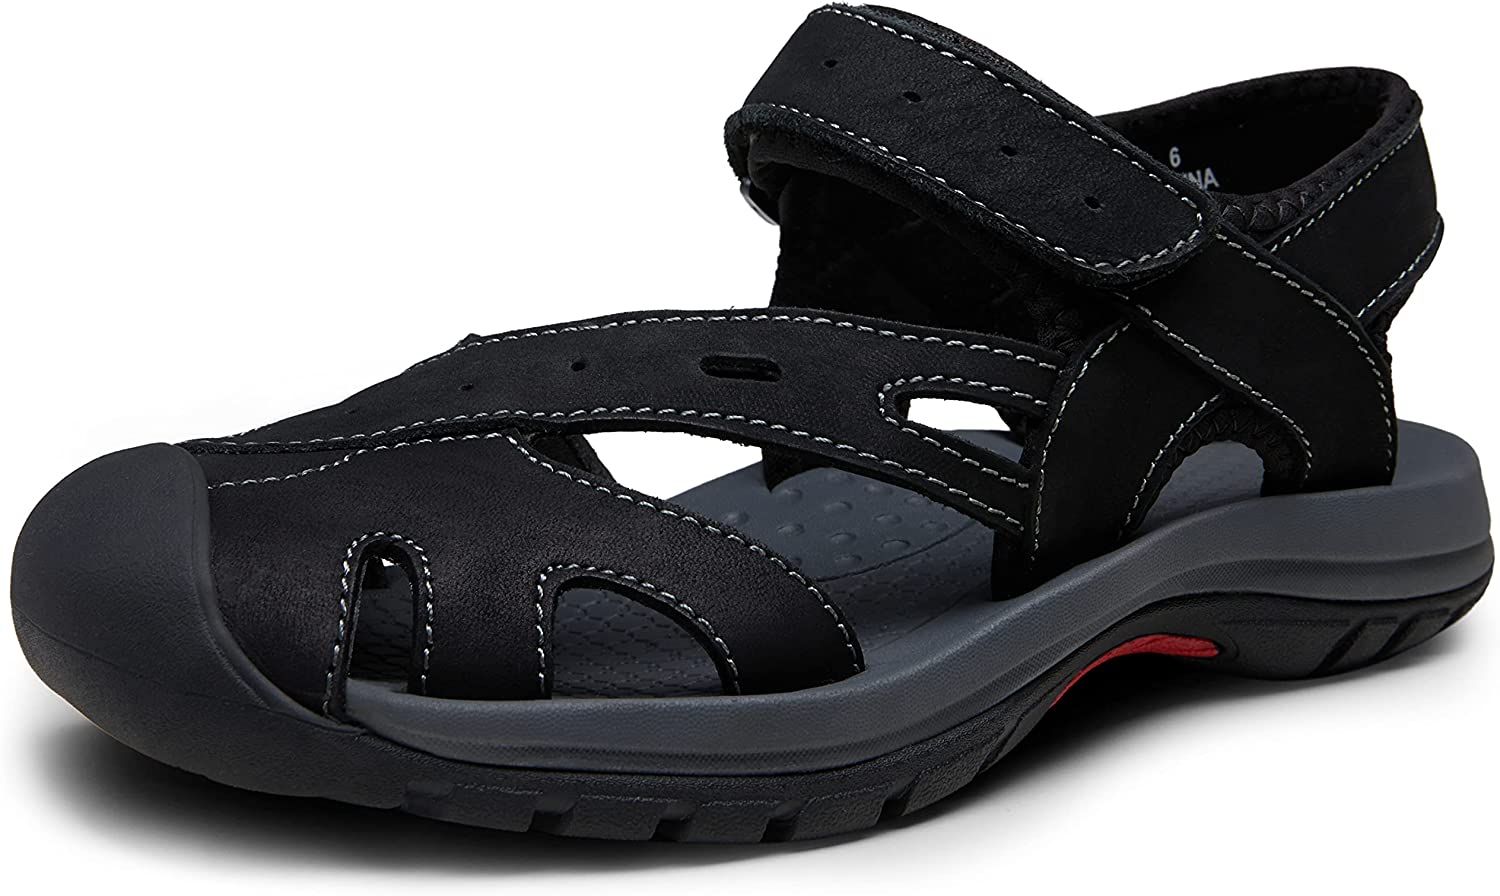 Jeossy Women's Leather Sports Sandals Summer Beach Closed Toe Outdoor Hiking Sandal Wide Width